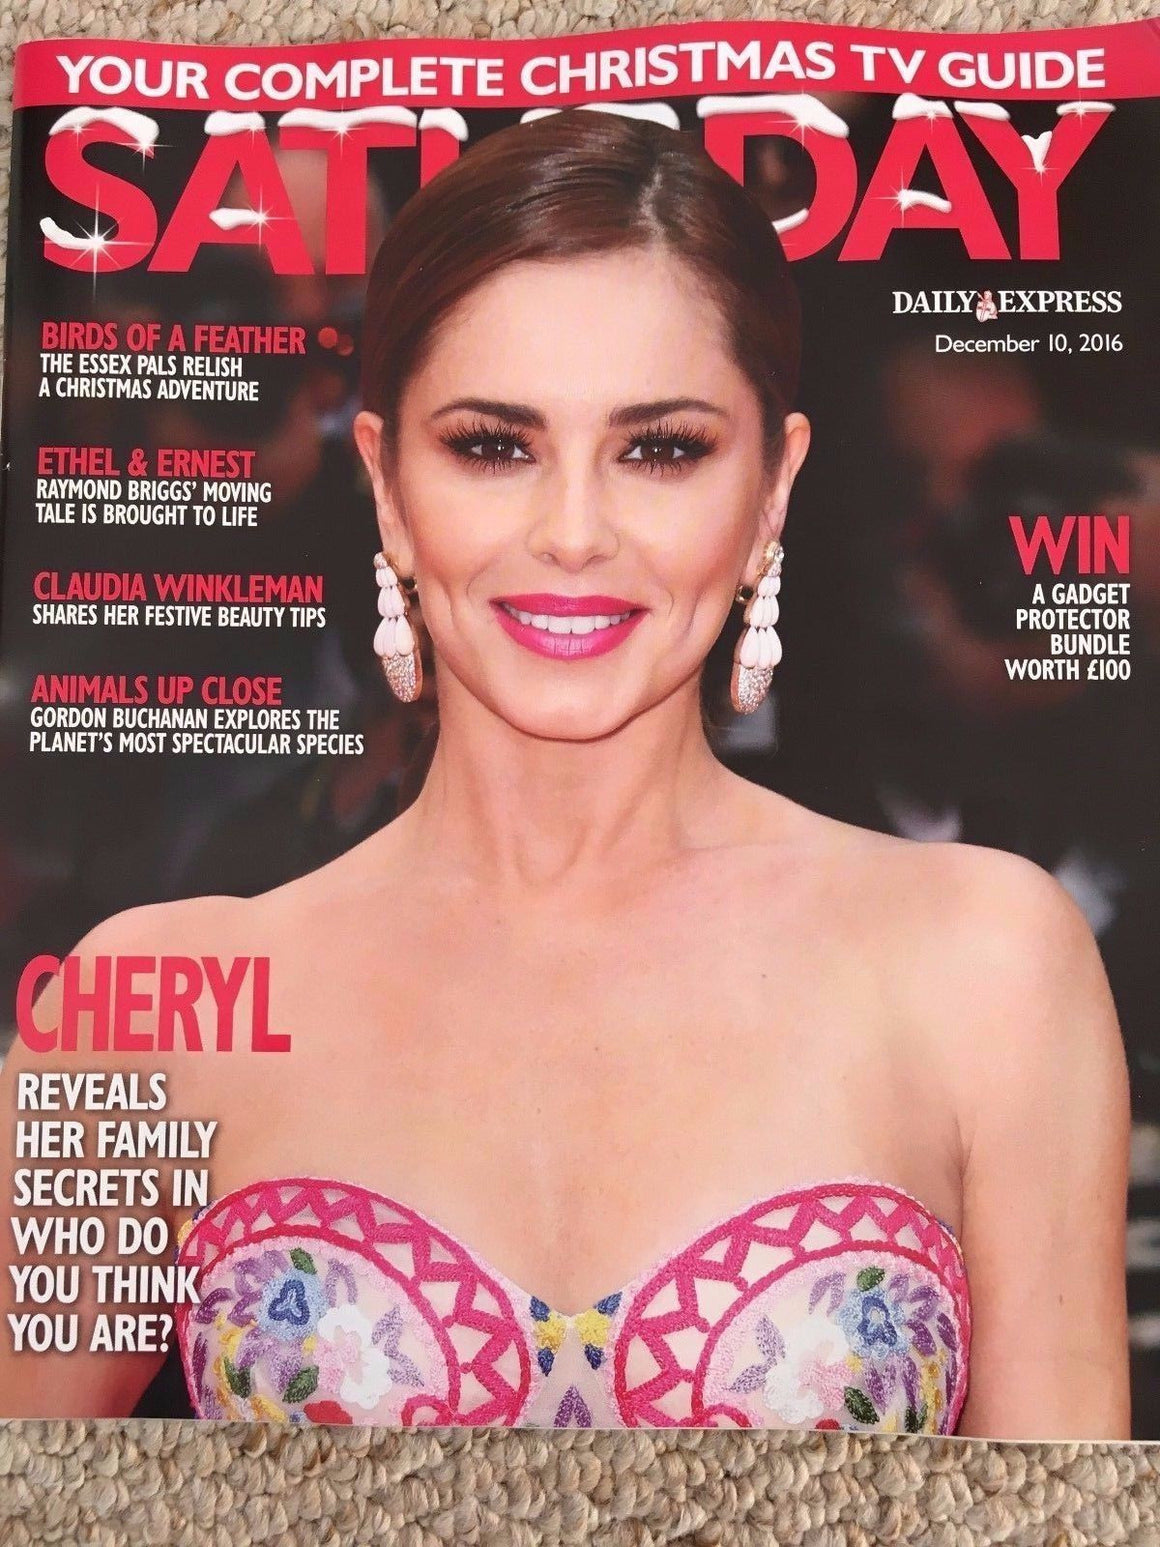 SATURDAY Magazine 12/2016 CHERYL Sarah Lancashire MUD Rob Davis SARAH PARISH